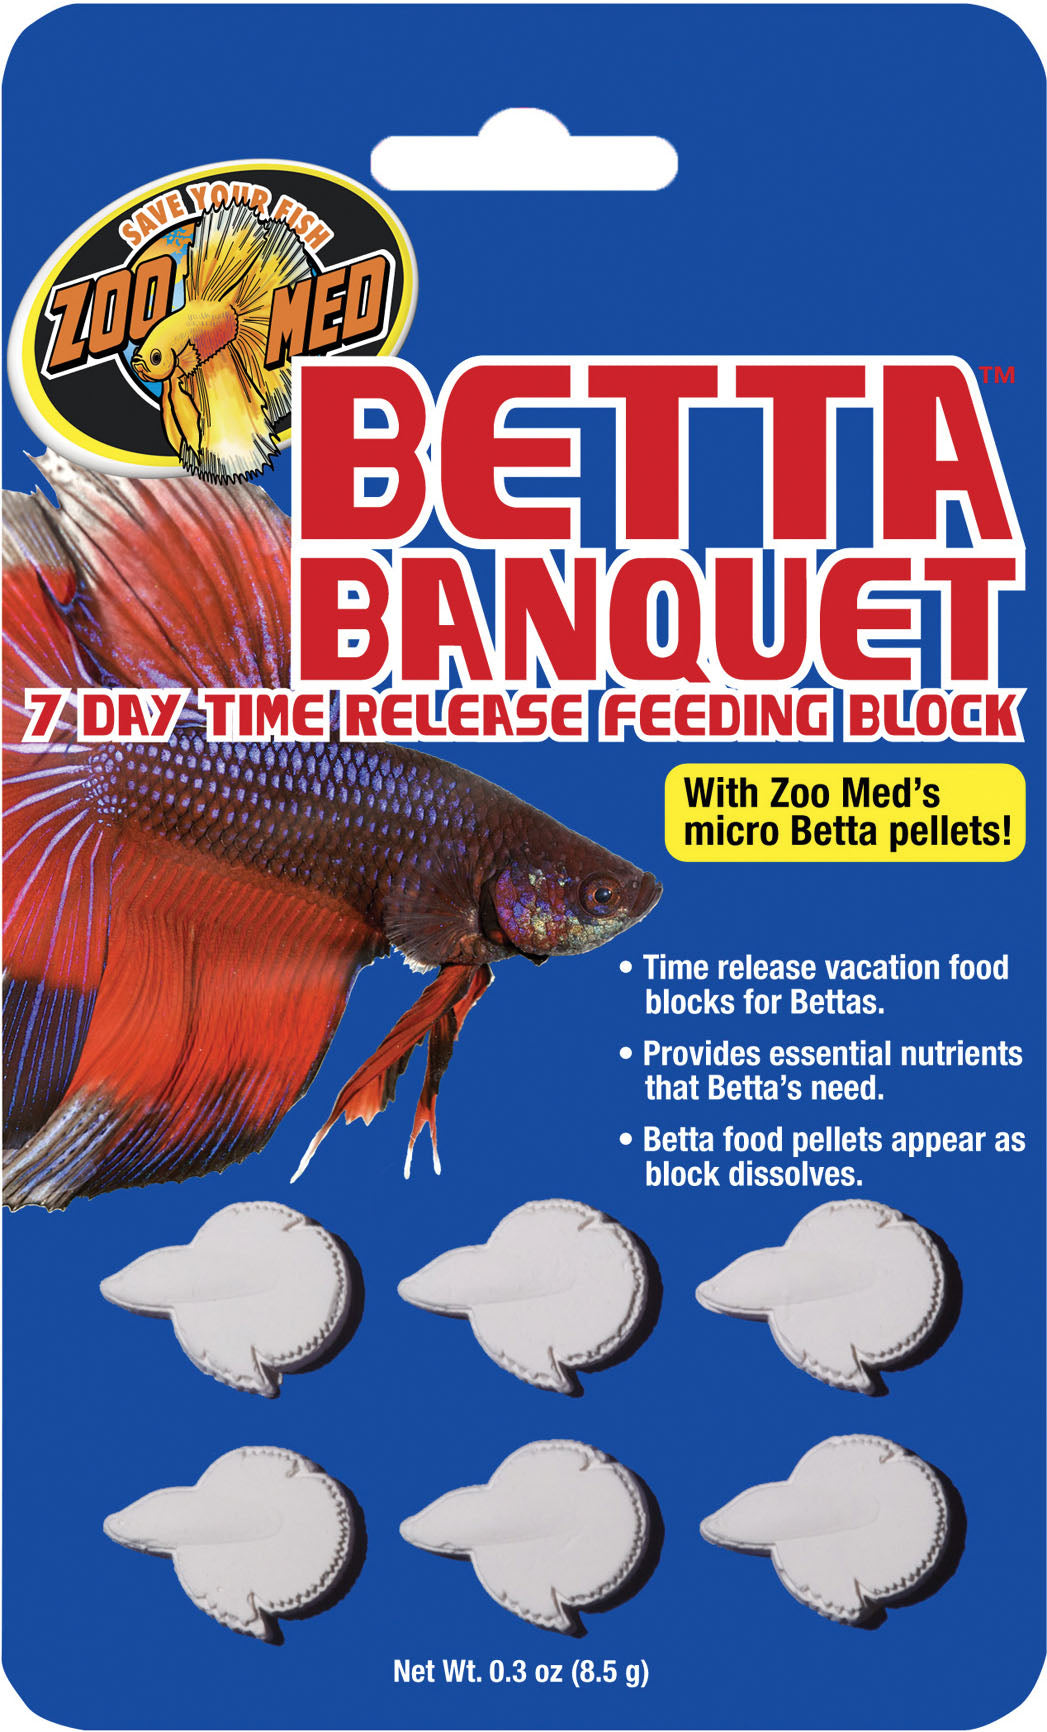 Betta Banquet Feeding Block 7 Day Time Release